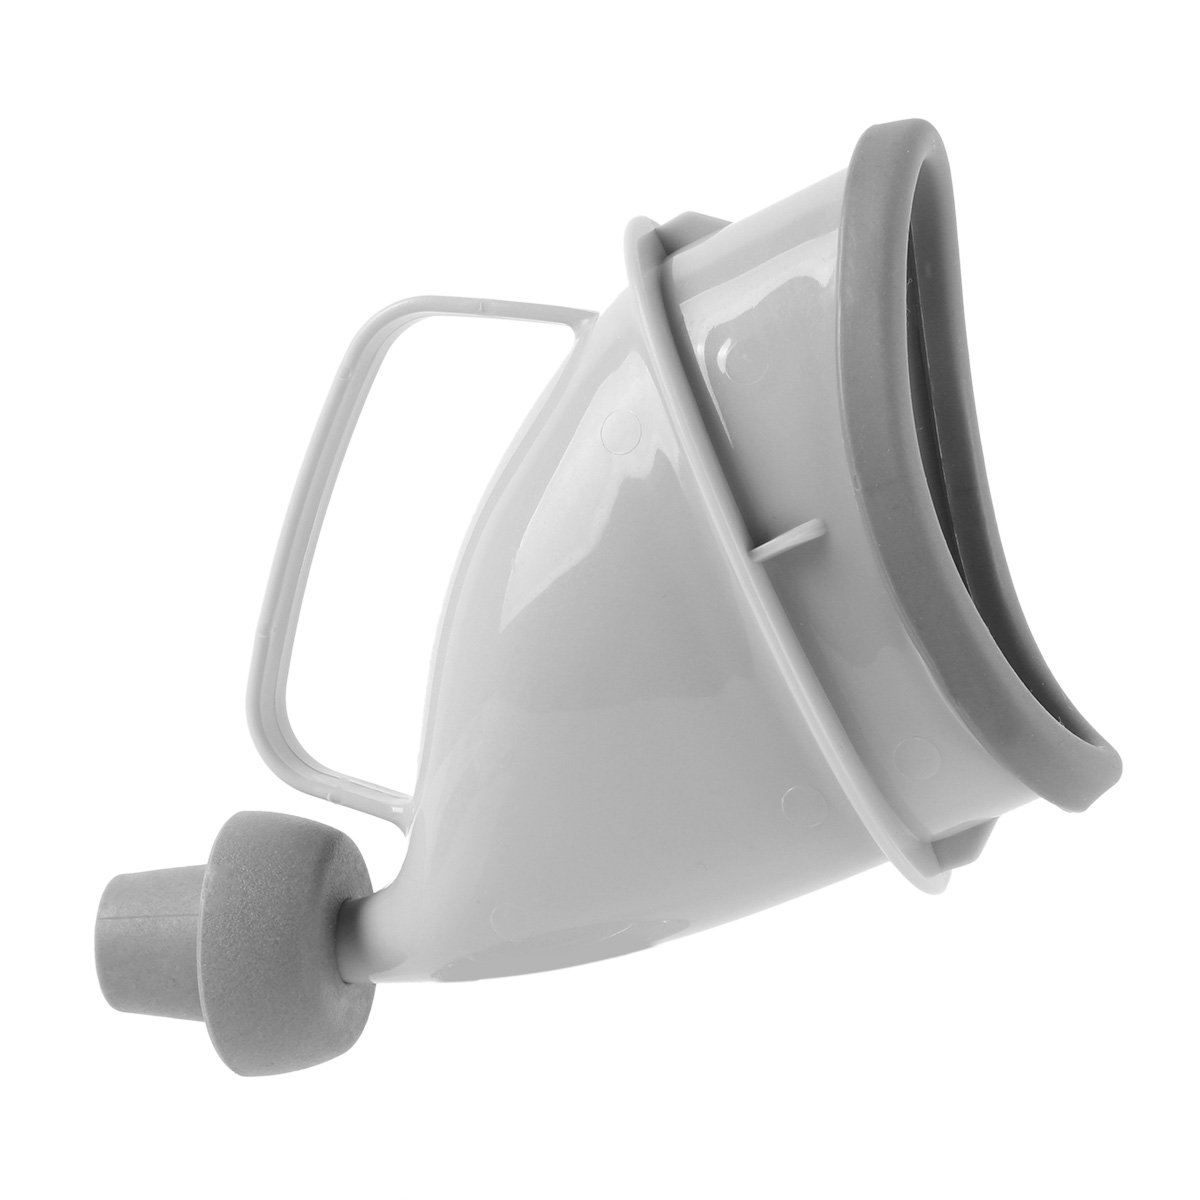 iEFiEL Portable Lightweight Unisex Potty Emergency Pee Funnel Urinal Toilet Outdoor Car Travel Traffic Jam Use